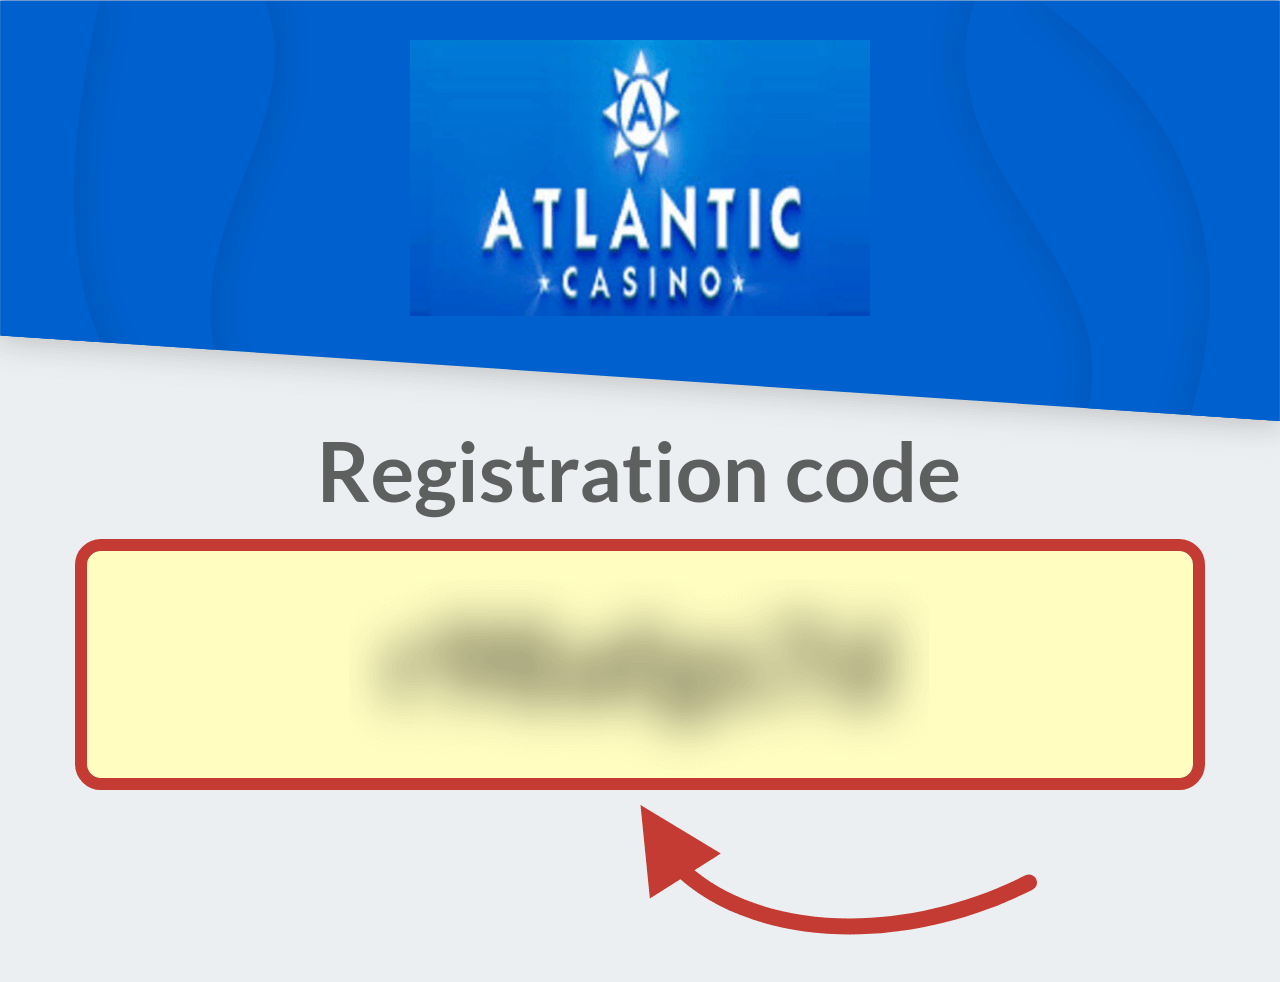 Atlantic Casino Bonus Code